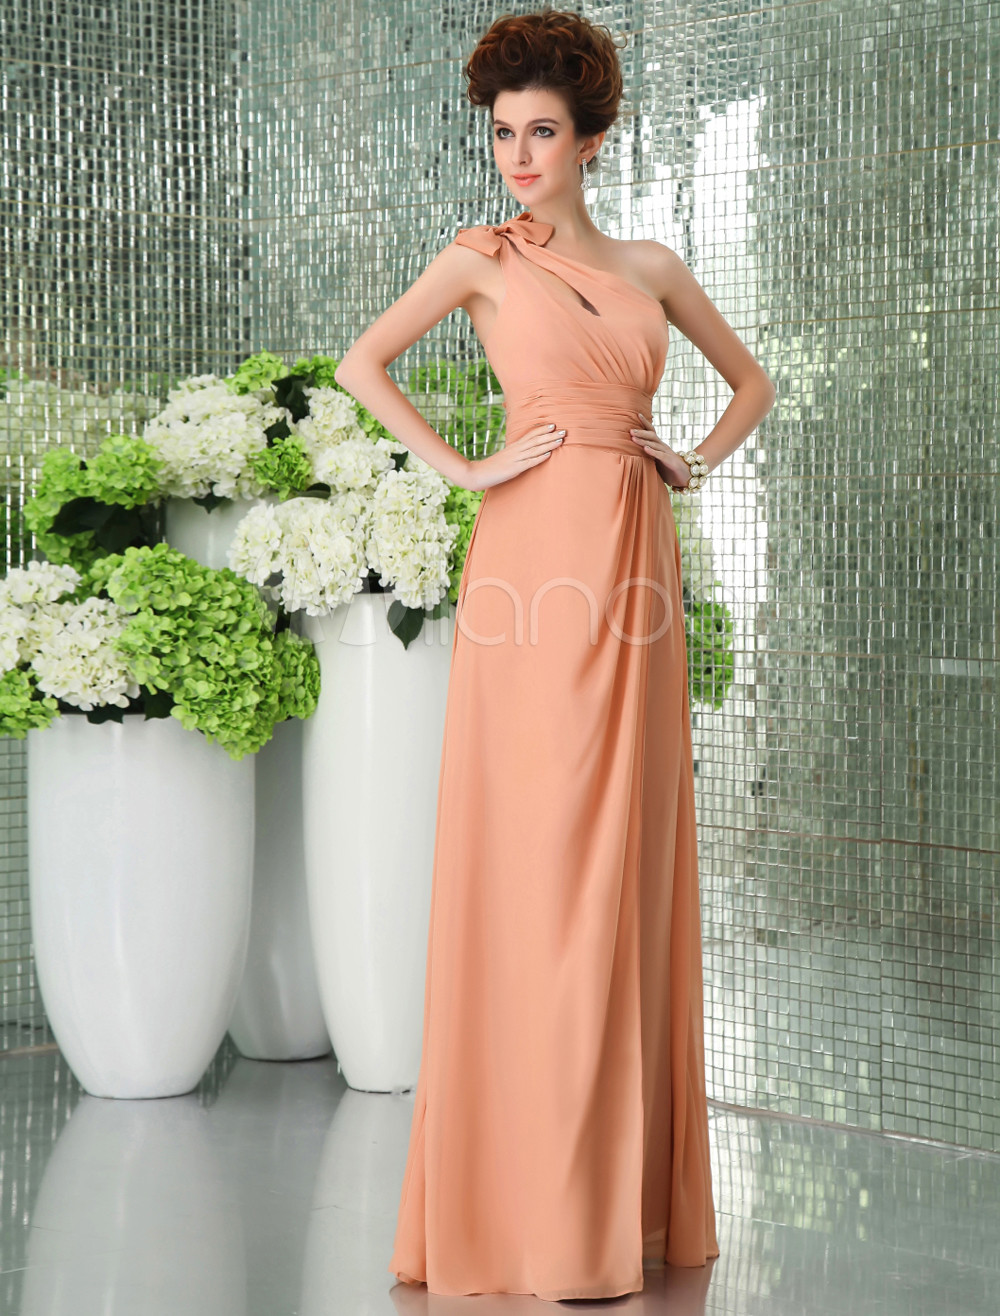 Peach Bridesmaid Dress One-Shoulder Backless Bows Chiffon Dress